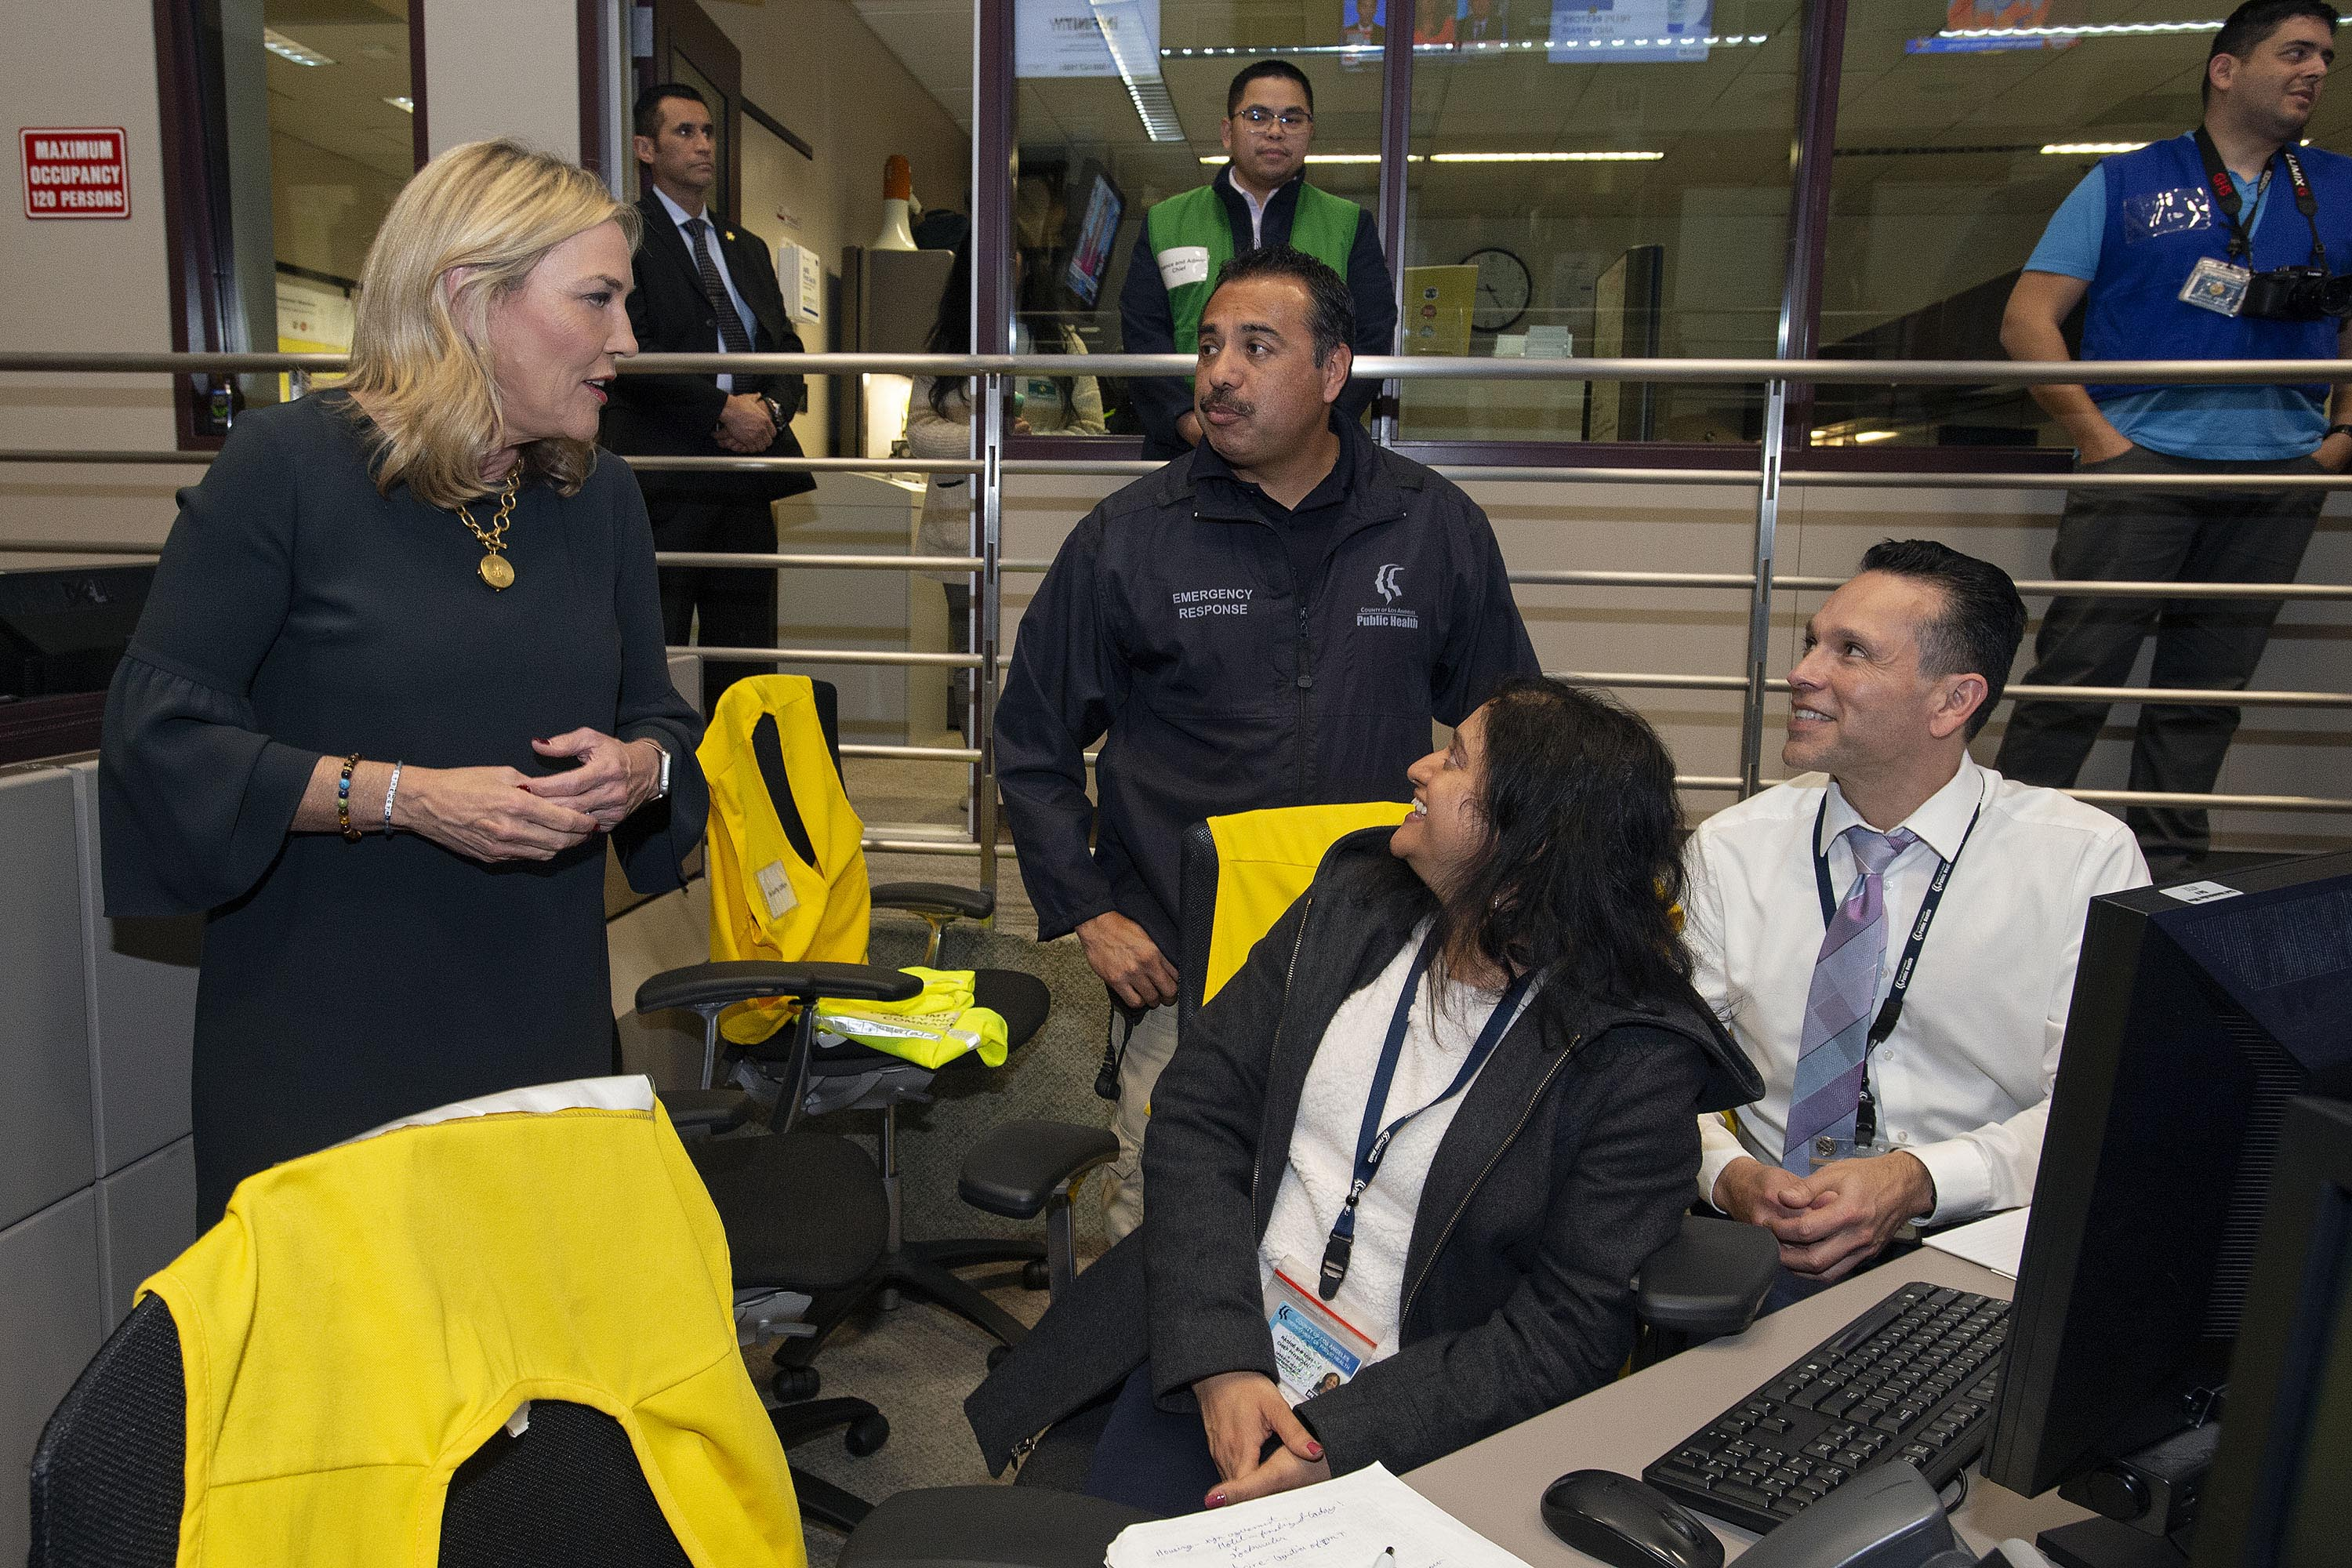 District 5 – Supervisor Kathryn Barger<br>  <b>March 12, 2020 - Emergency Operation Center Tour. </b><br> <i>Photo by Diandra Jay / Board of Supervisors</i>